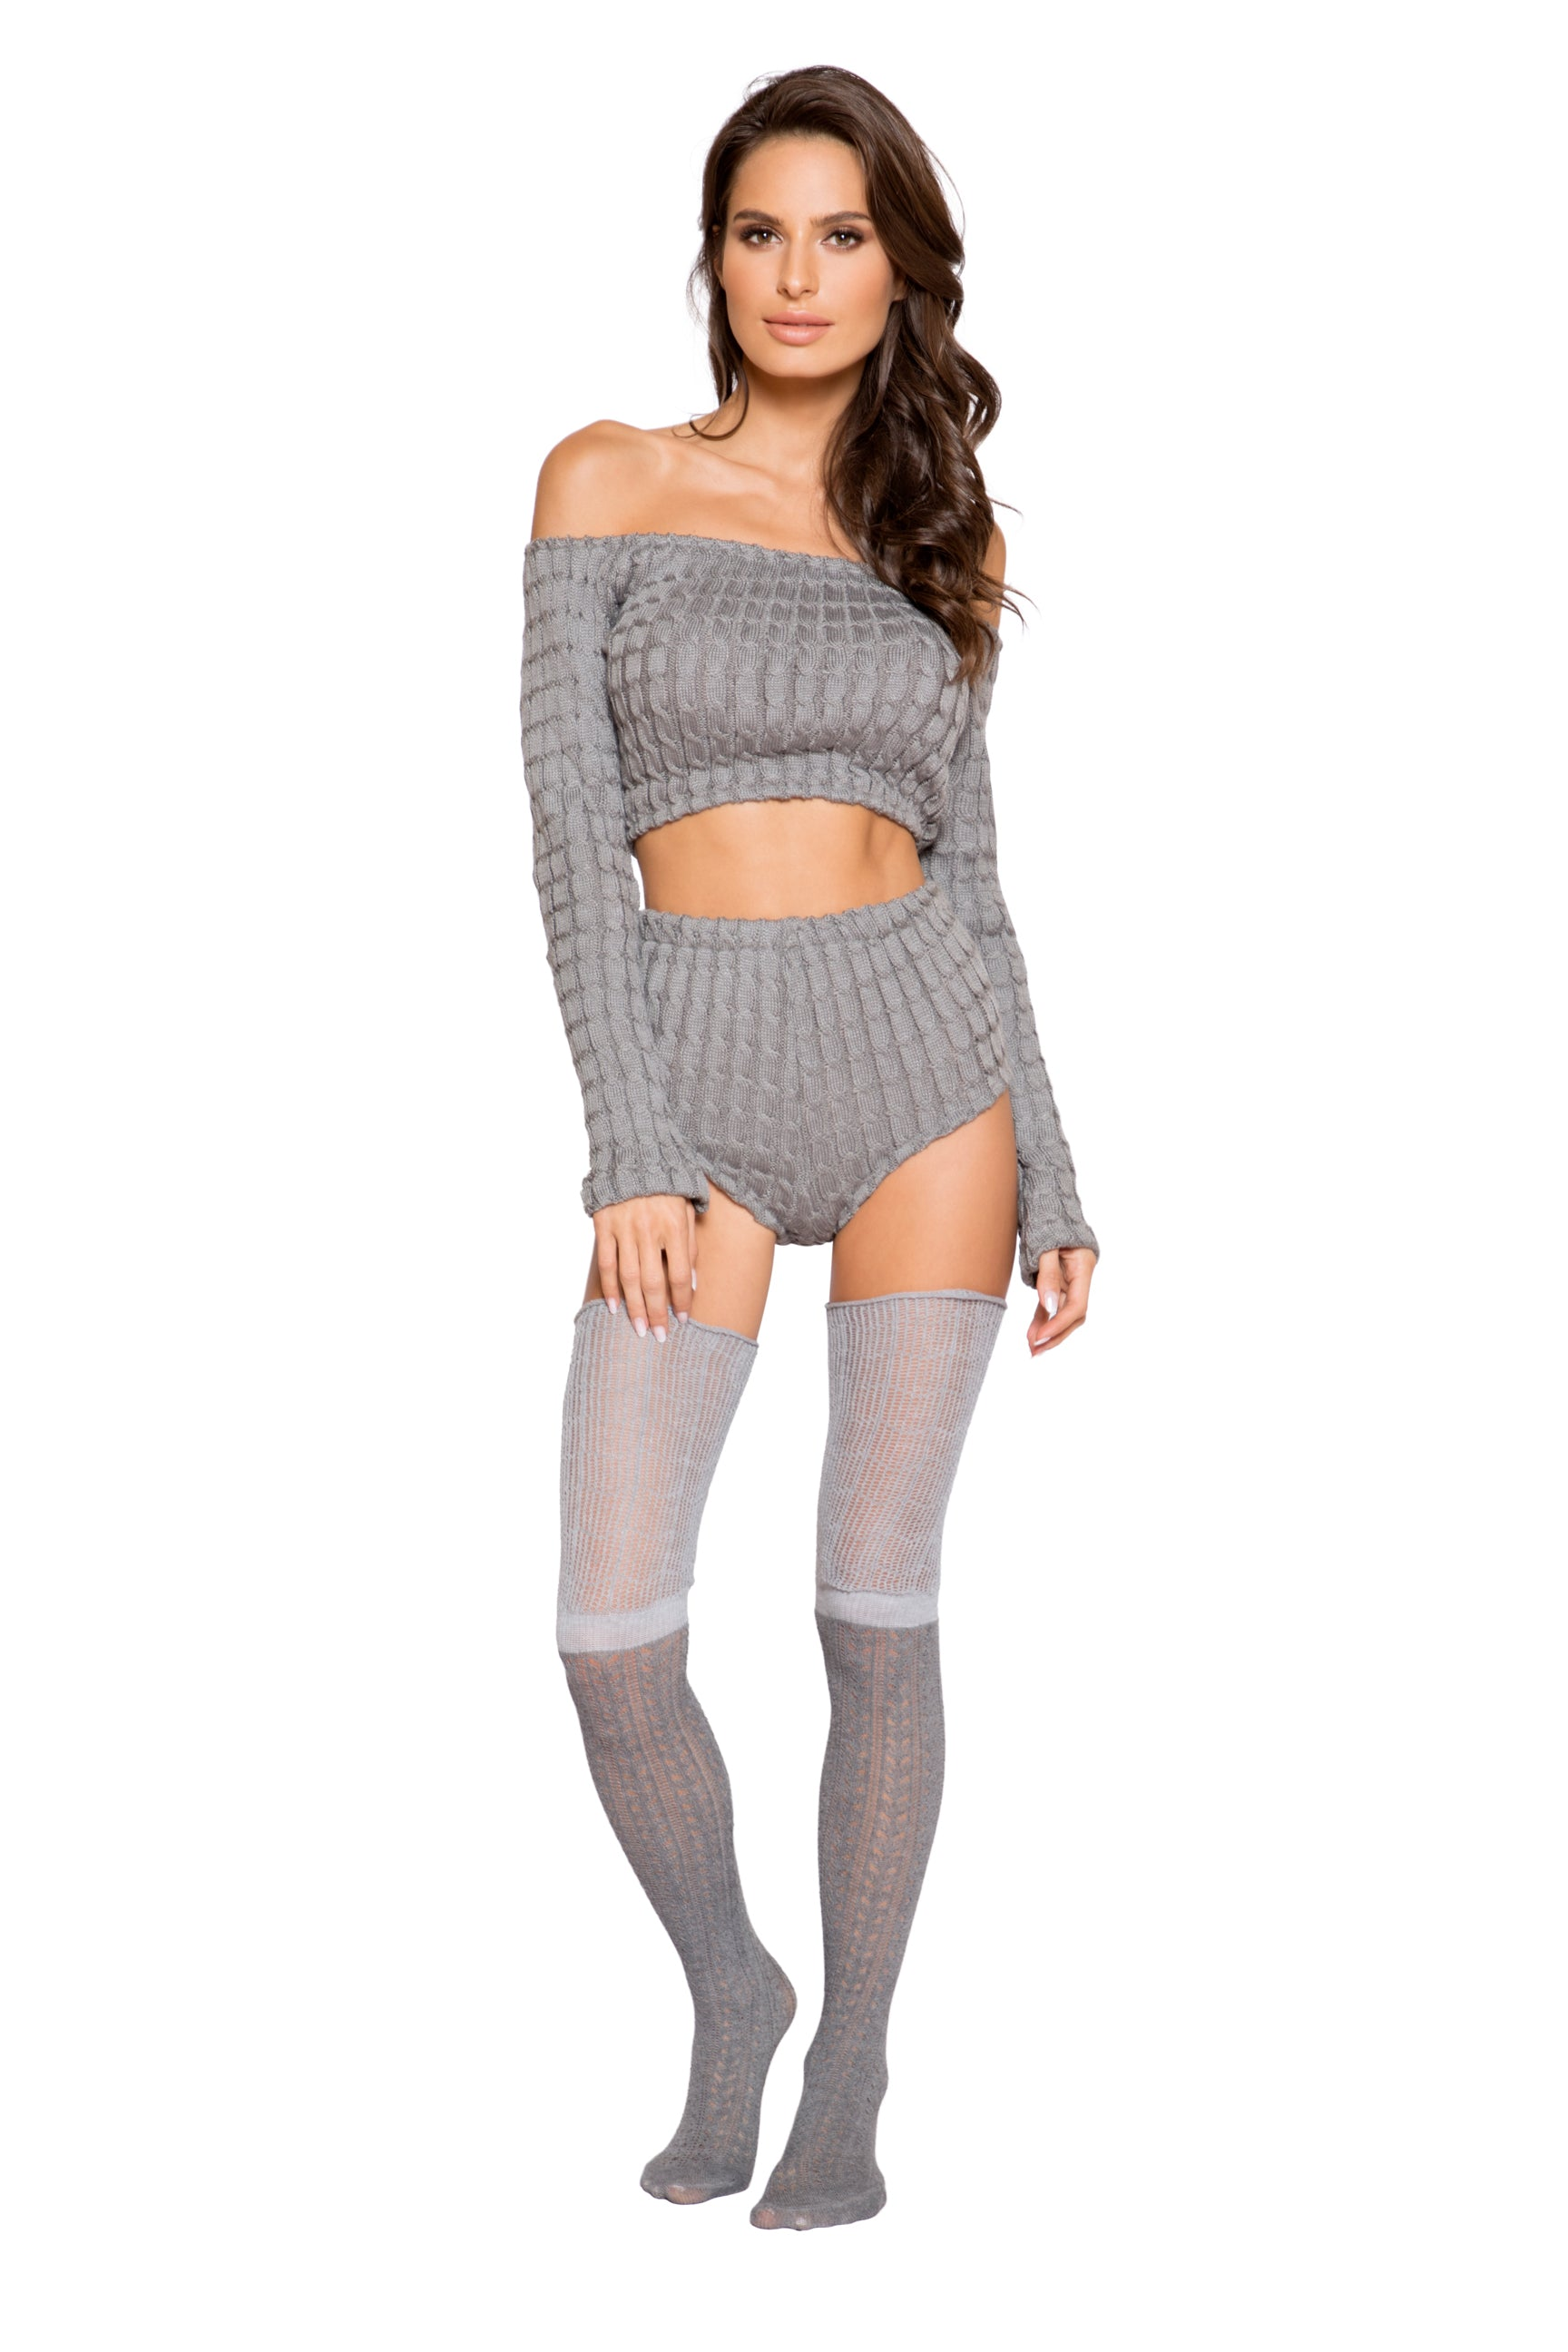 LI287 - Cozy & Comfy Pajama Short Set ${description} | Roma Costume and Roma Confidential wholesale manufacturer of Women Apparel bulk world wide wholesale and world wide drop ship services for Adult Halloween Costumes, Sexy and Elegant Lingerie, Rave Clothing, Club wear, and Christmas Costumes. lingerie, Roma Costume, Inc., Roma Costume, Roma Confidential, Wholesale clothing, drop ship, drop ship service, Wholesale Lingerie, Wholesale Adult Halloween Costumes, Rave Clothing, EDM Clothing, Festival Wear, Christmas Costumes, Clubwear, Club wear.